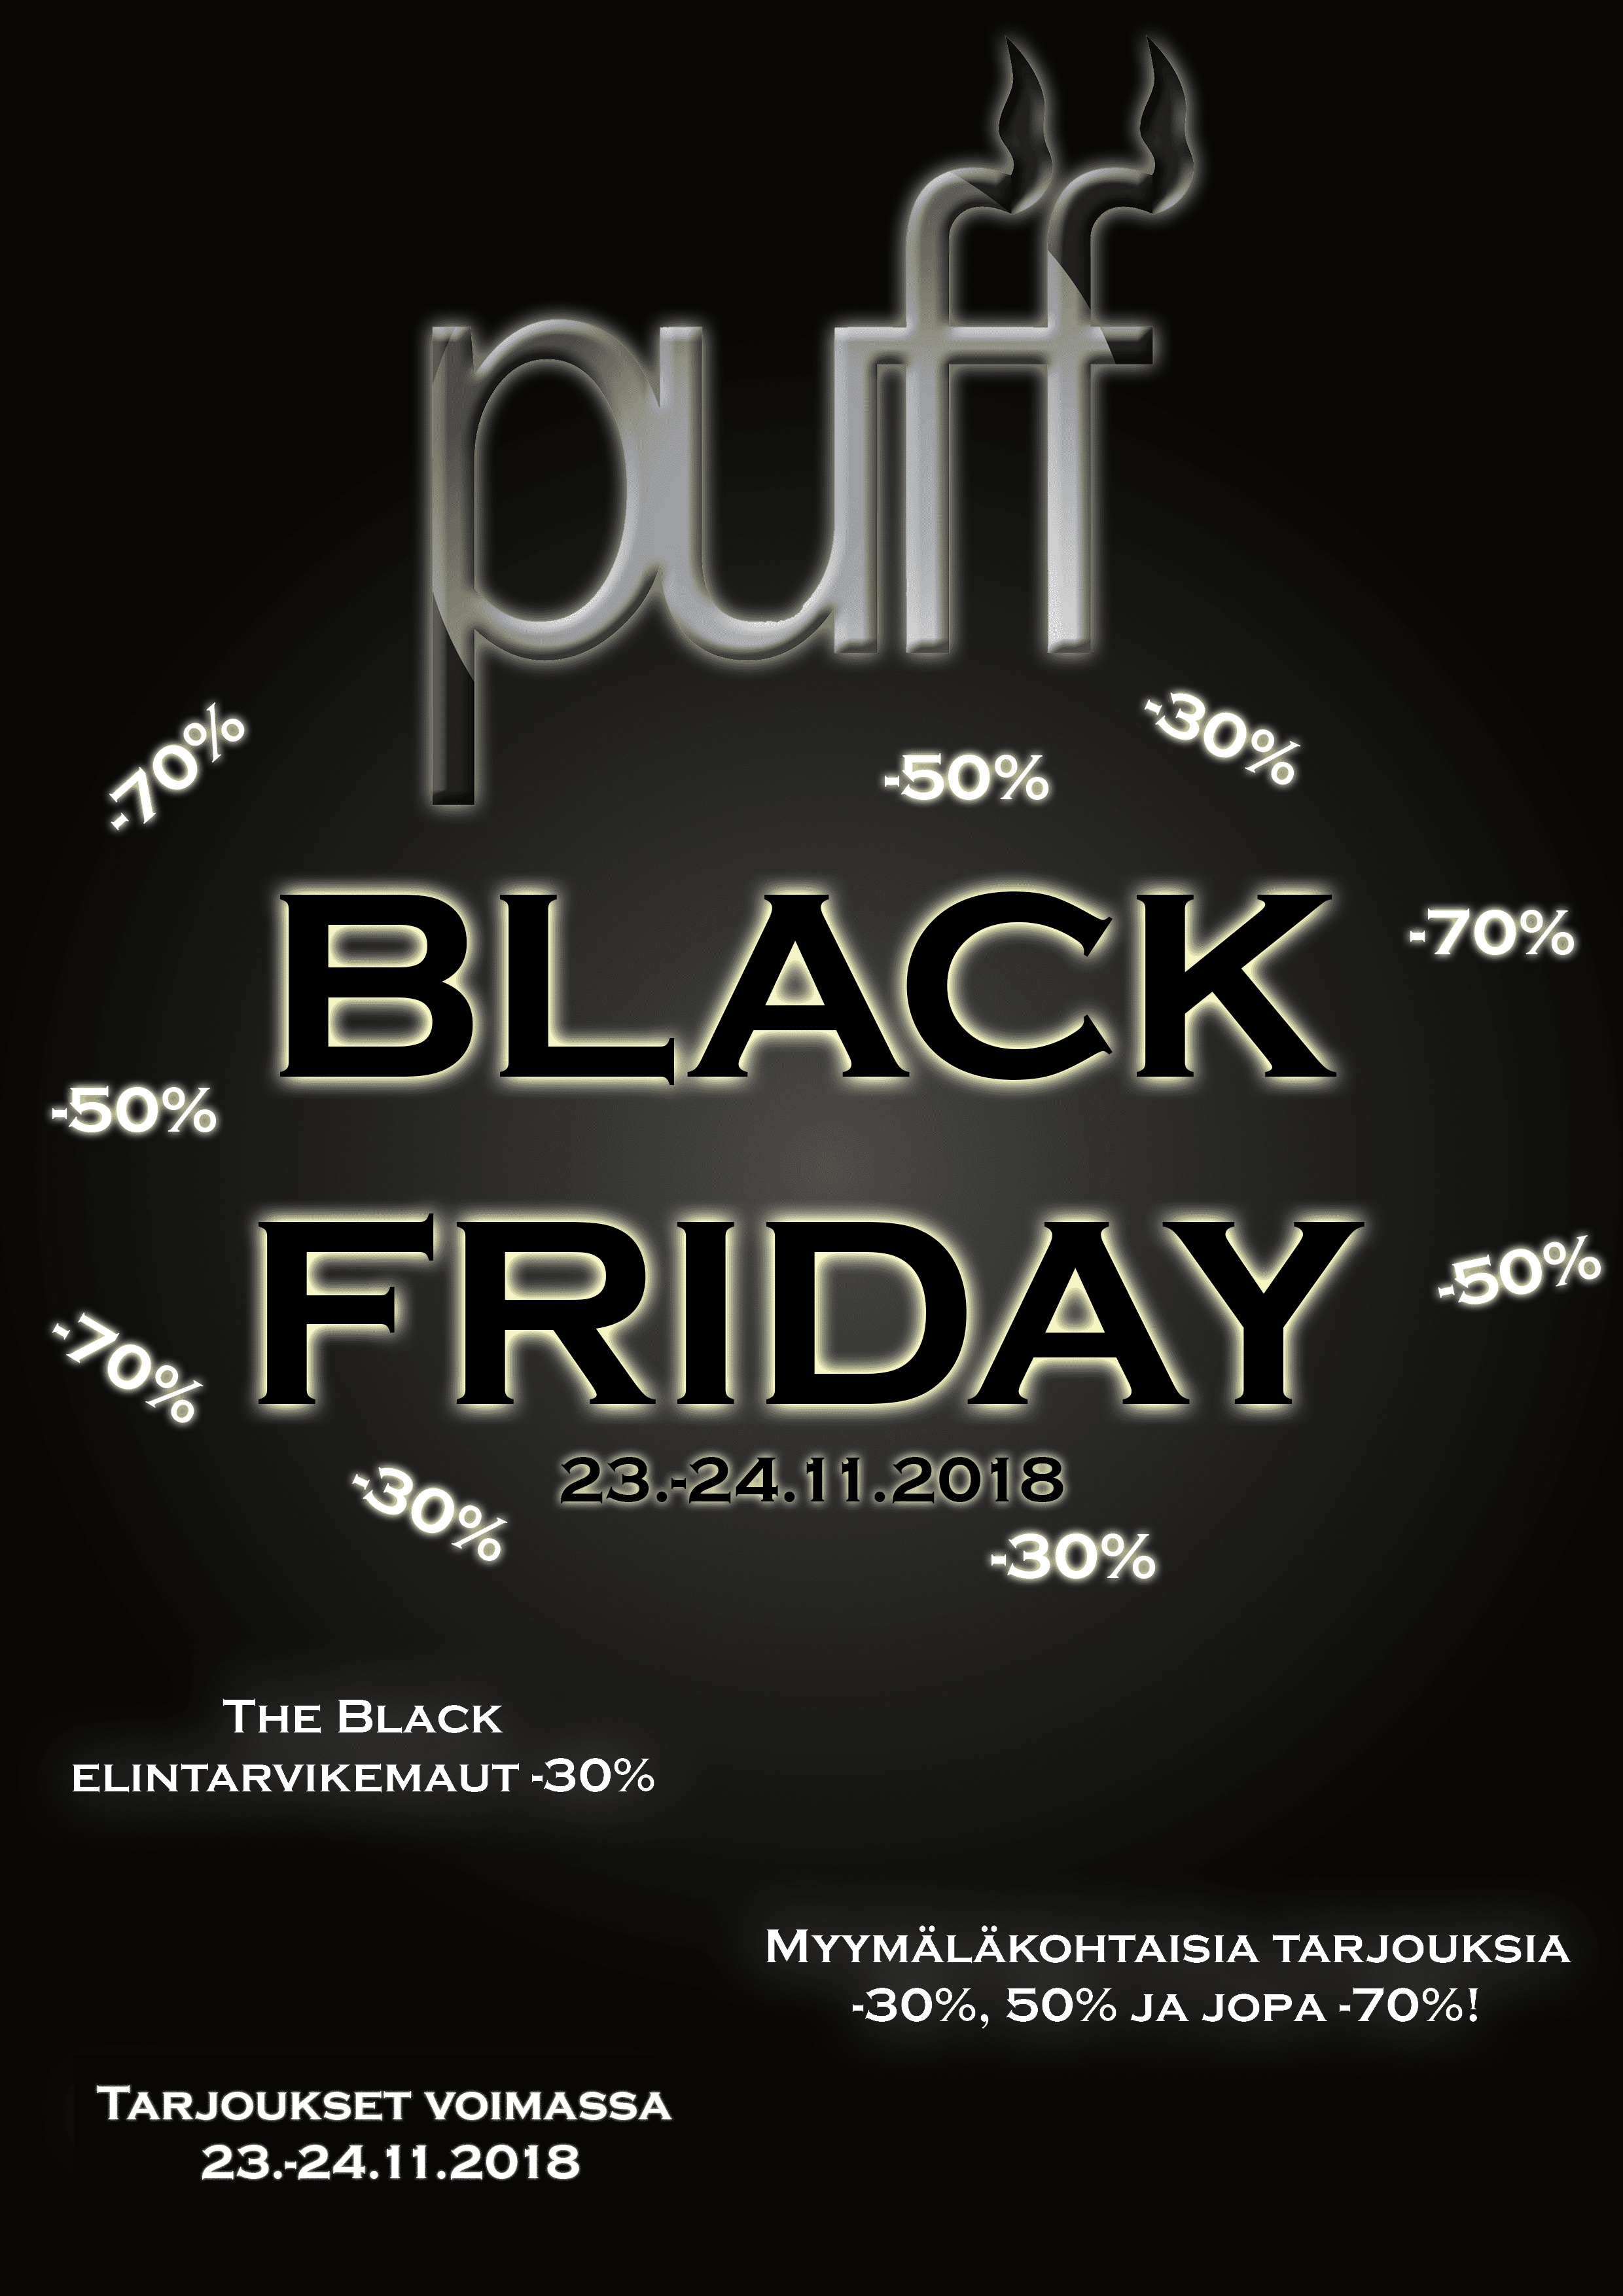 Puffin Black Friday on täällä!